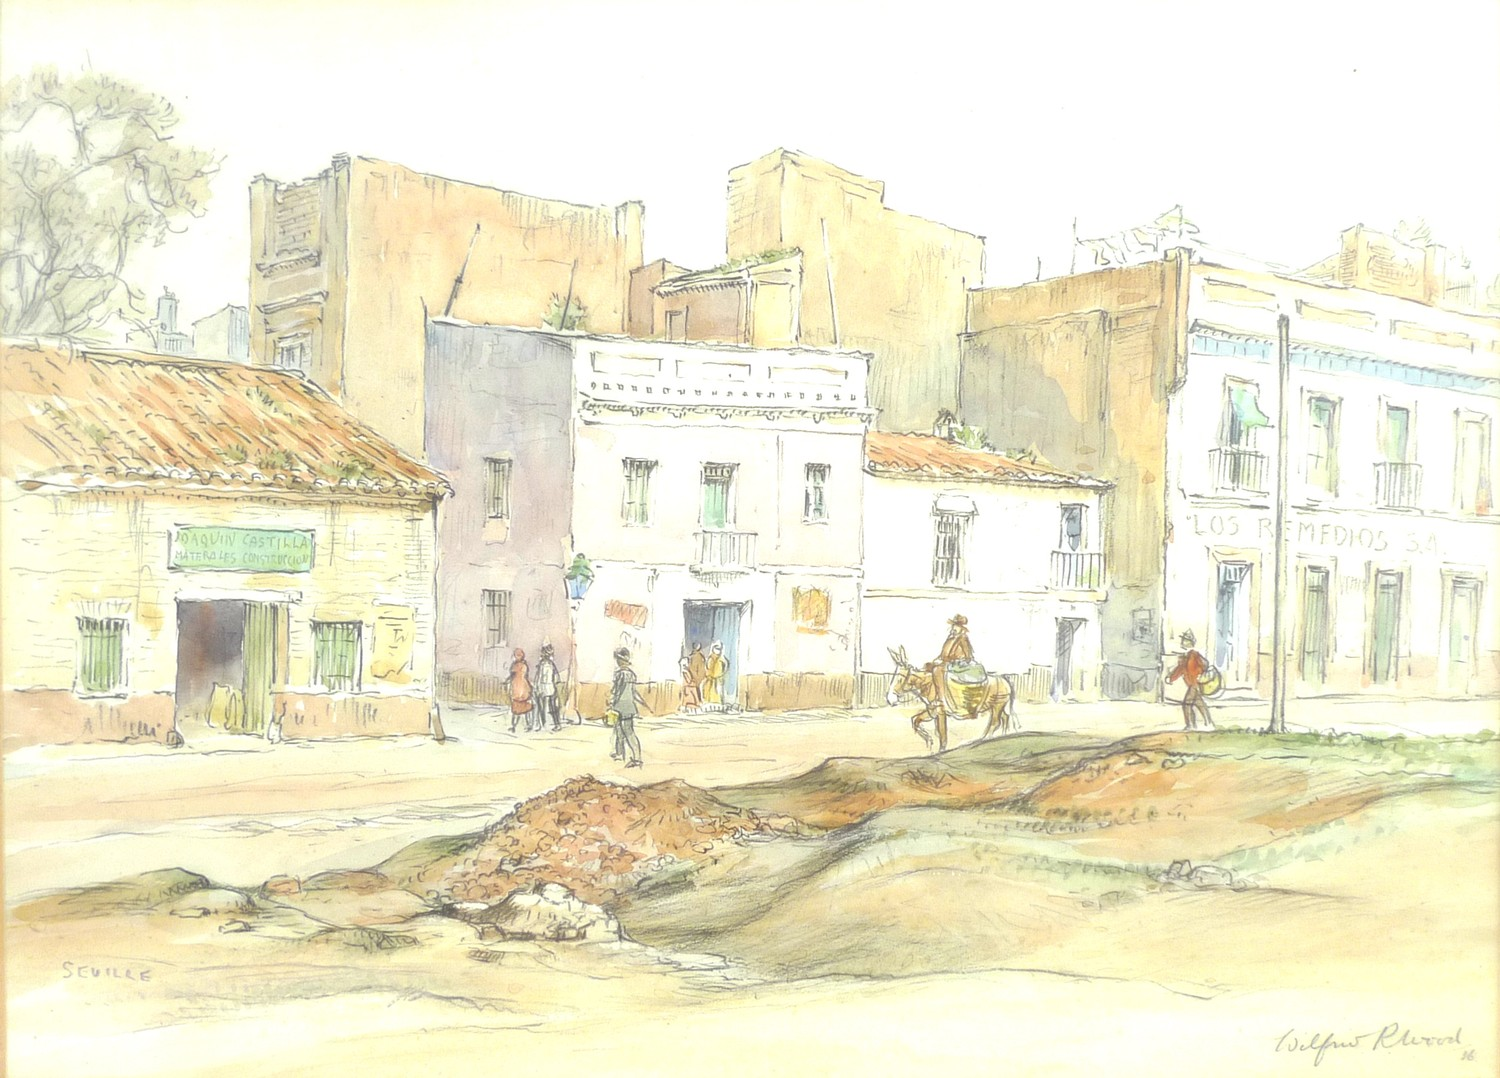 Wilfrid Rene Wood (British, 1888-1976): 'Seville', depicting a street scene, pencil and watercolour,